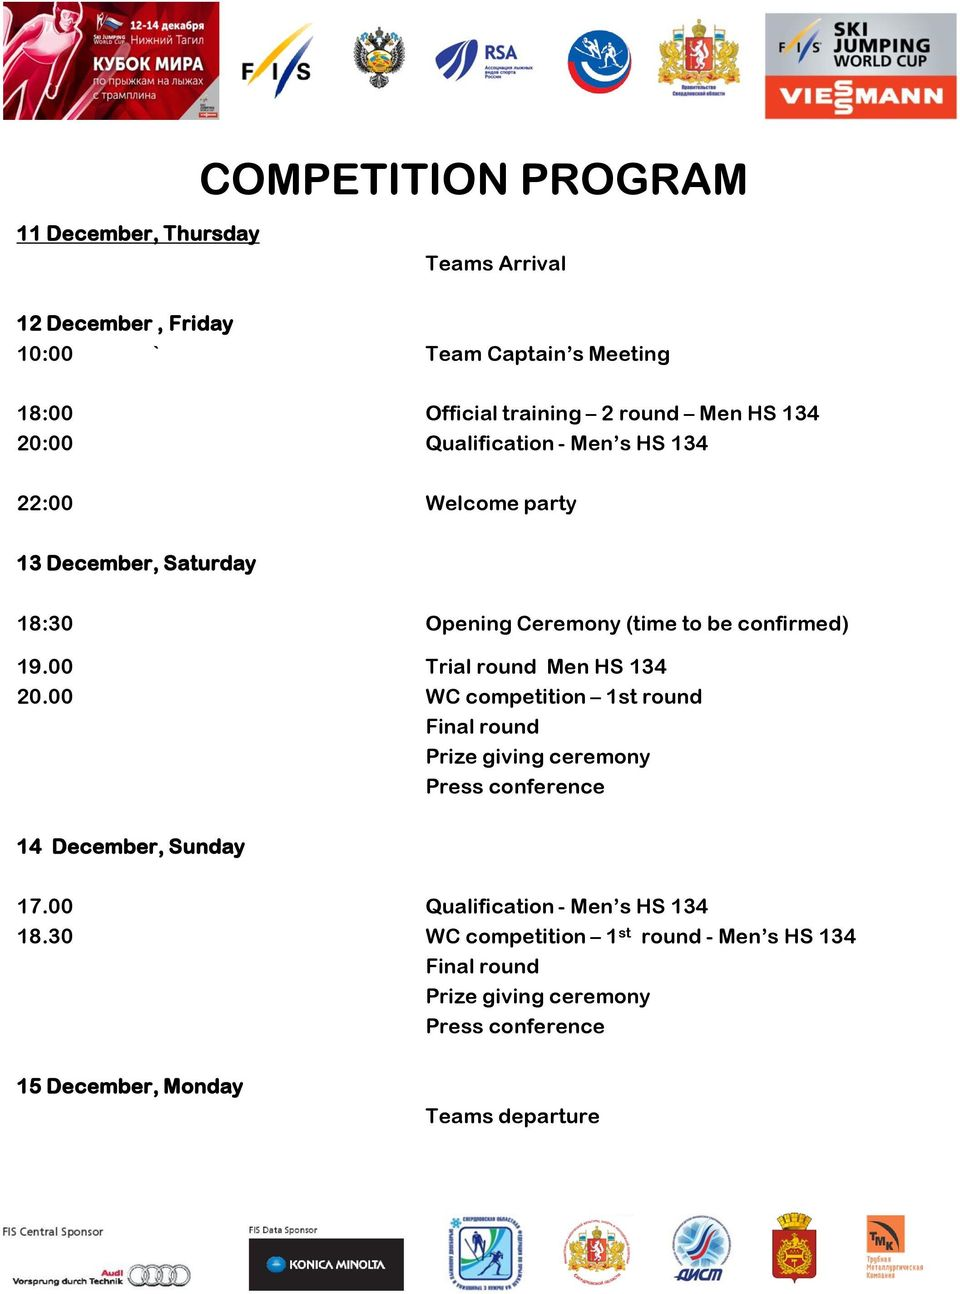 00 Trial round Men HS 134 20.00 WC competition 1st round Final round Prize giving ceremony Press conference 14 December, Sunday 17.